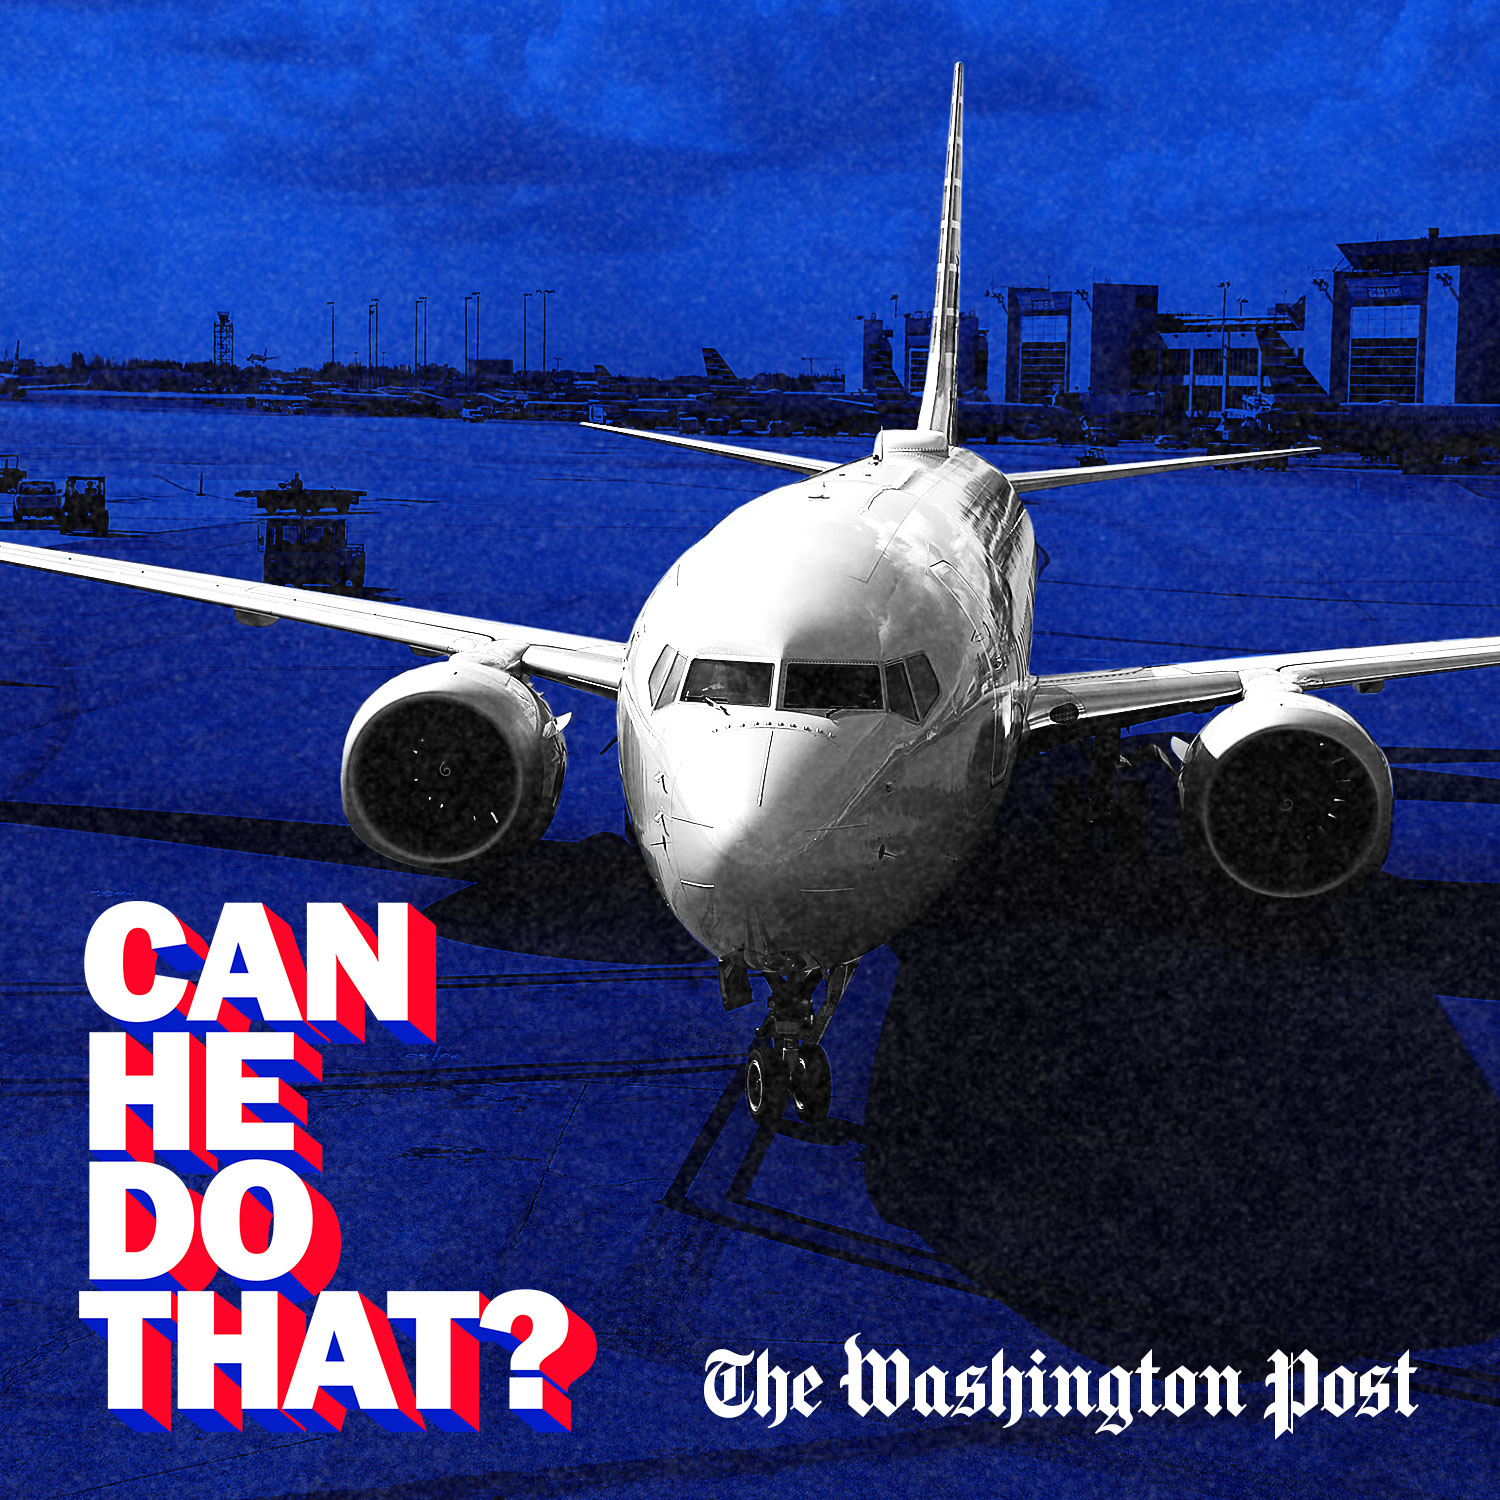 Does the president get to decide which planes can fly?